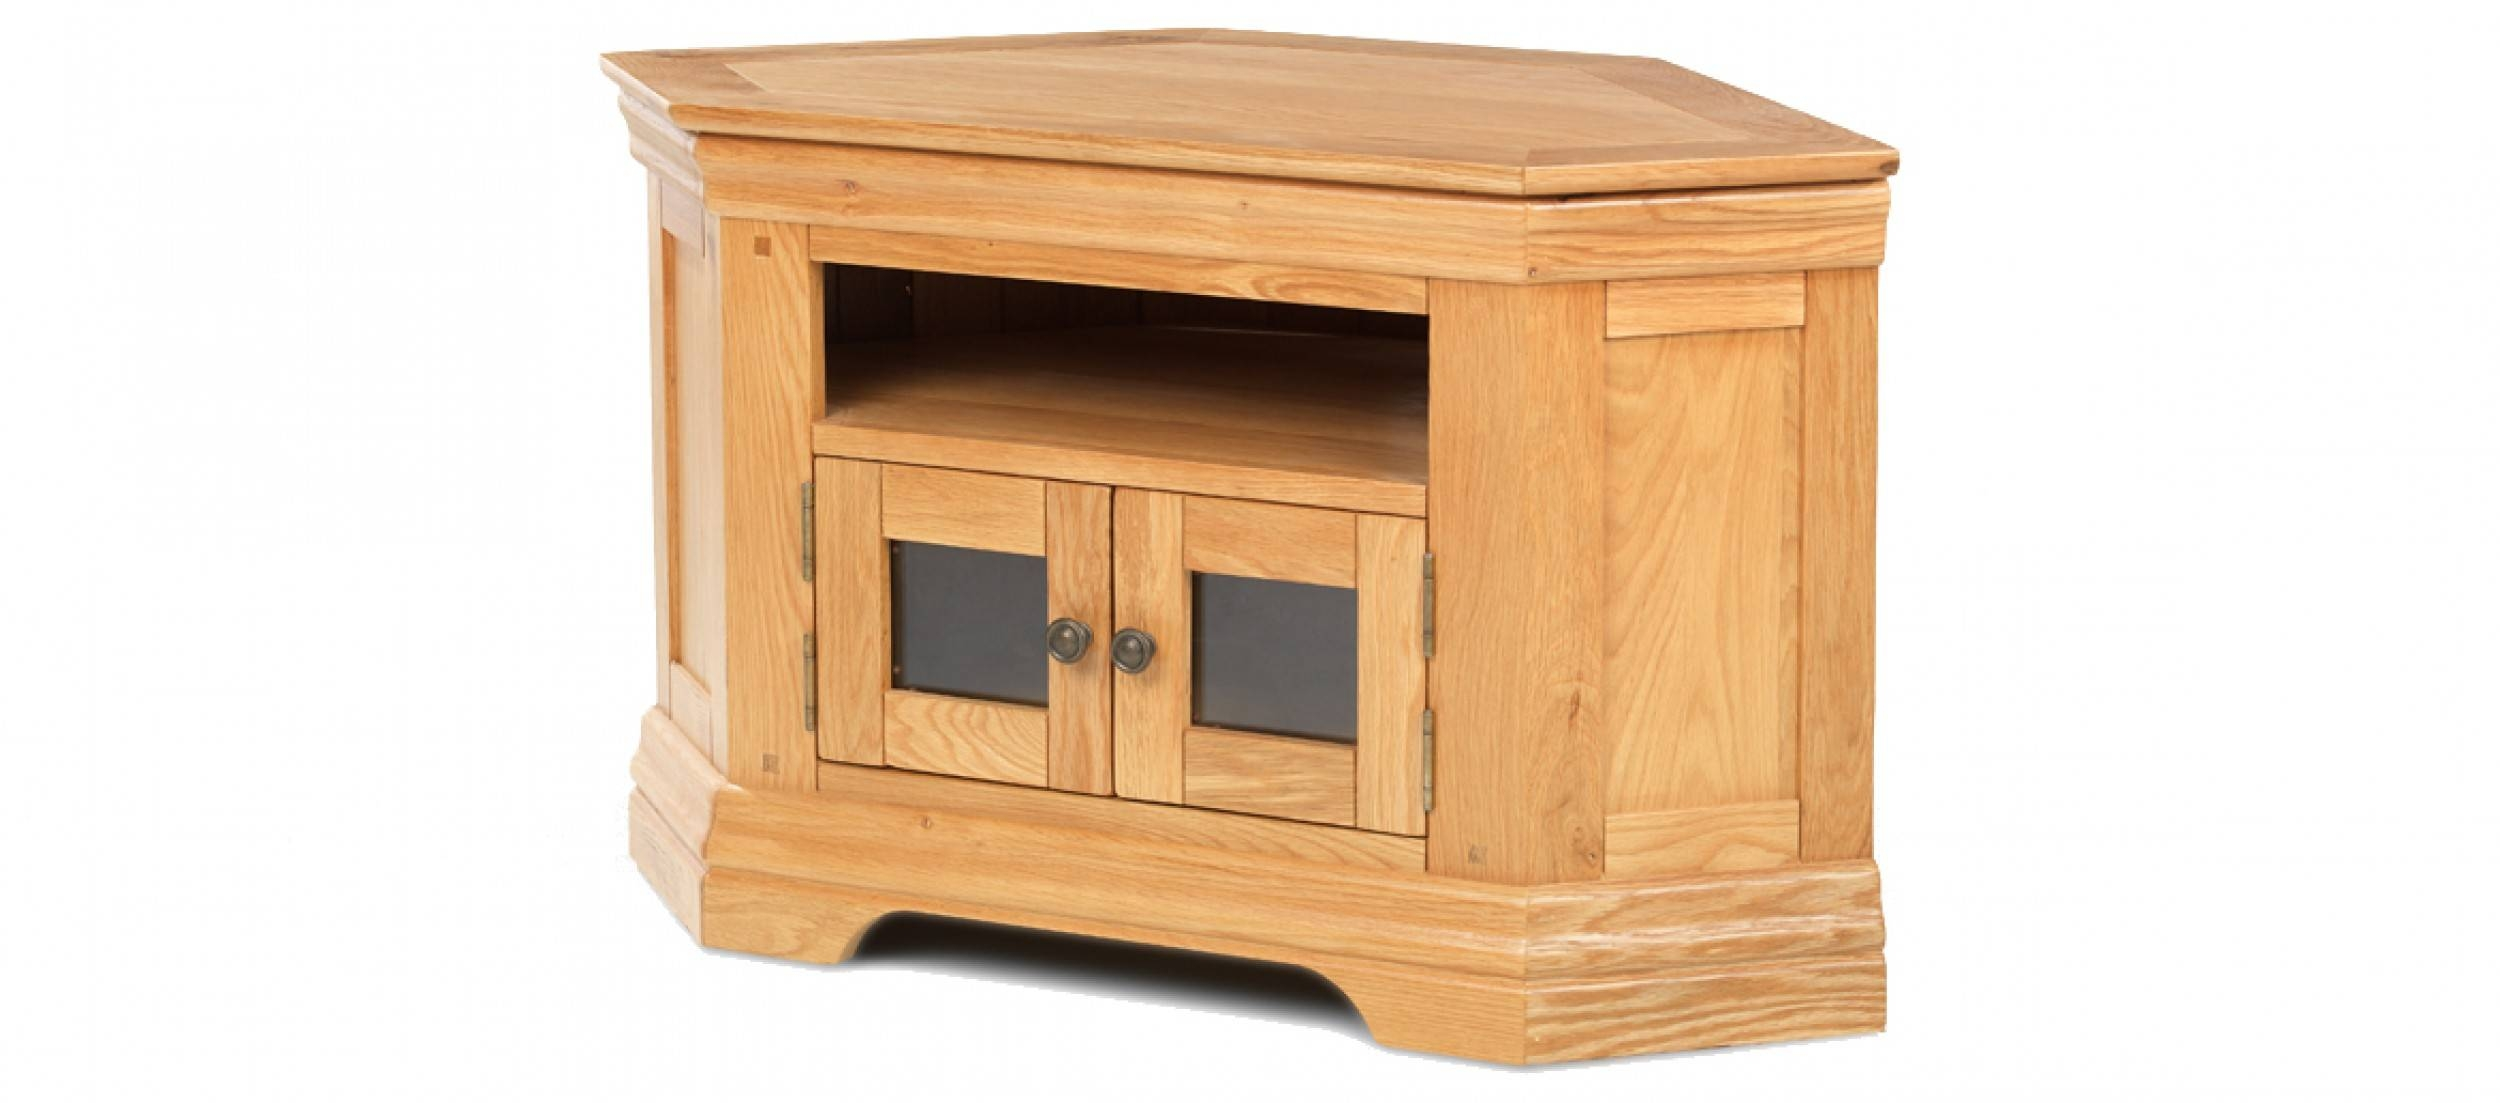 Constance Oak Corner Tv Cabinet | Quercus Living Inside Corner Tv Cabinets (View 5 of 15)